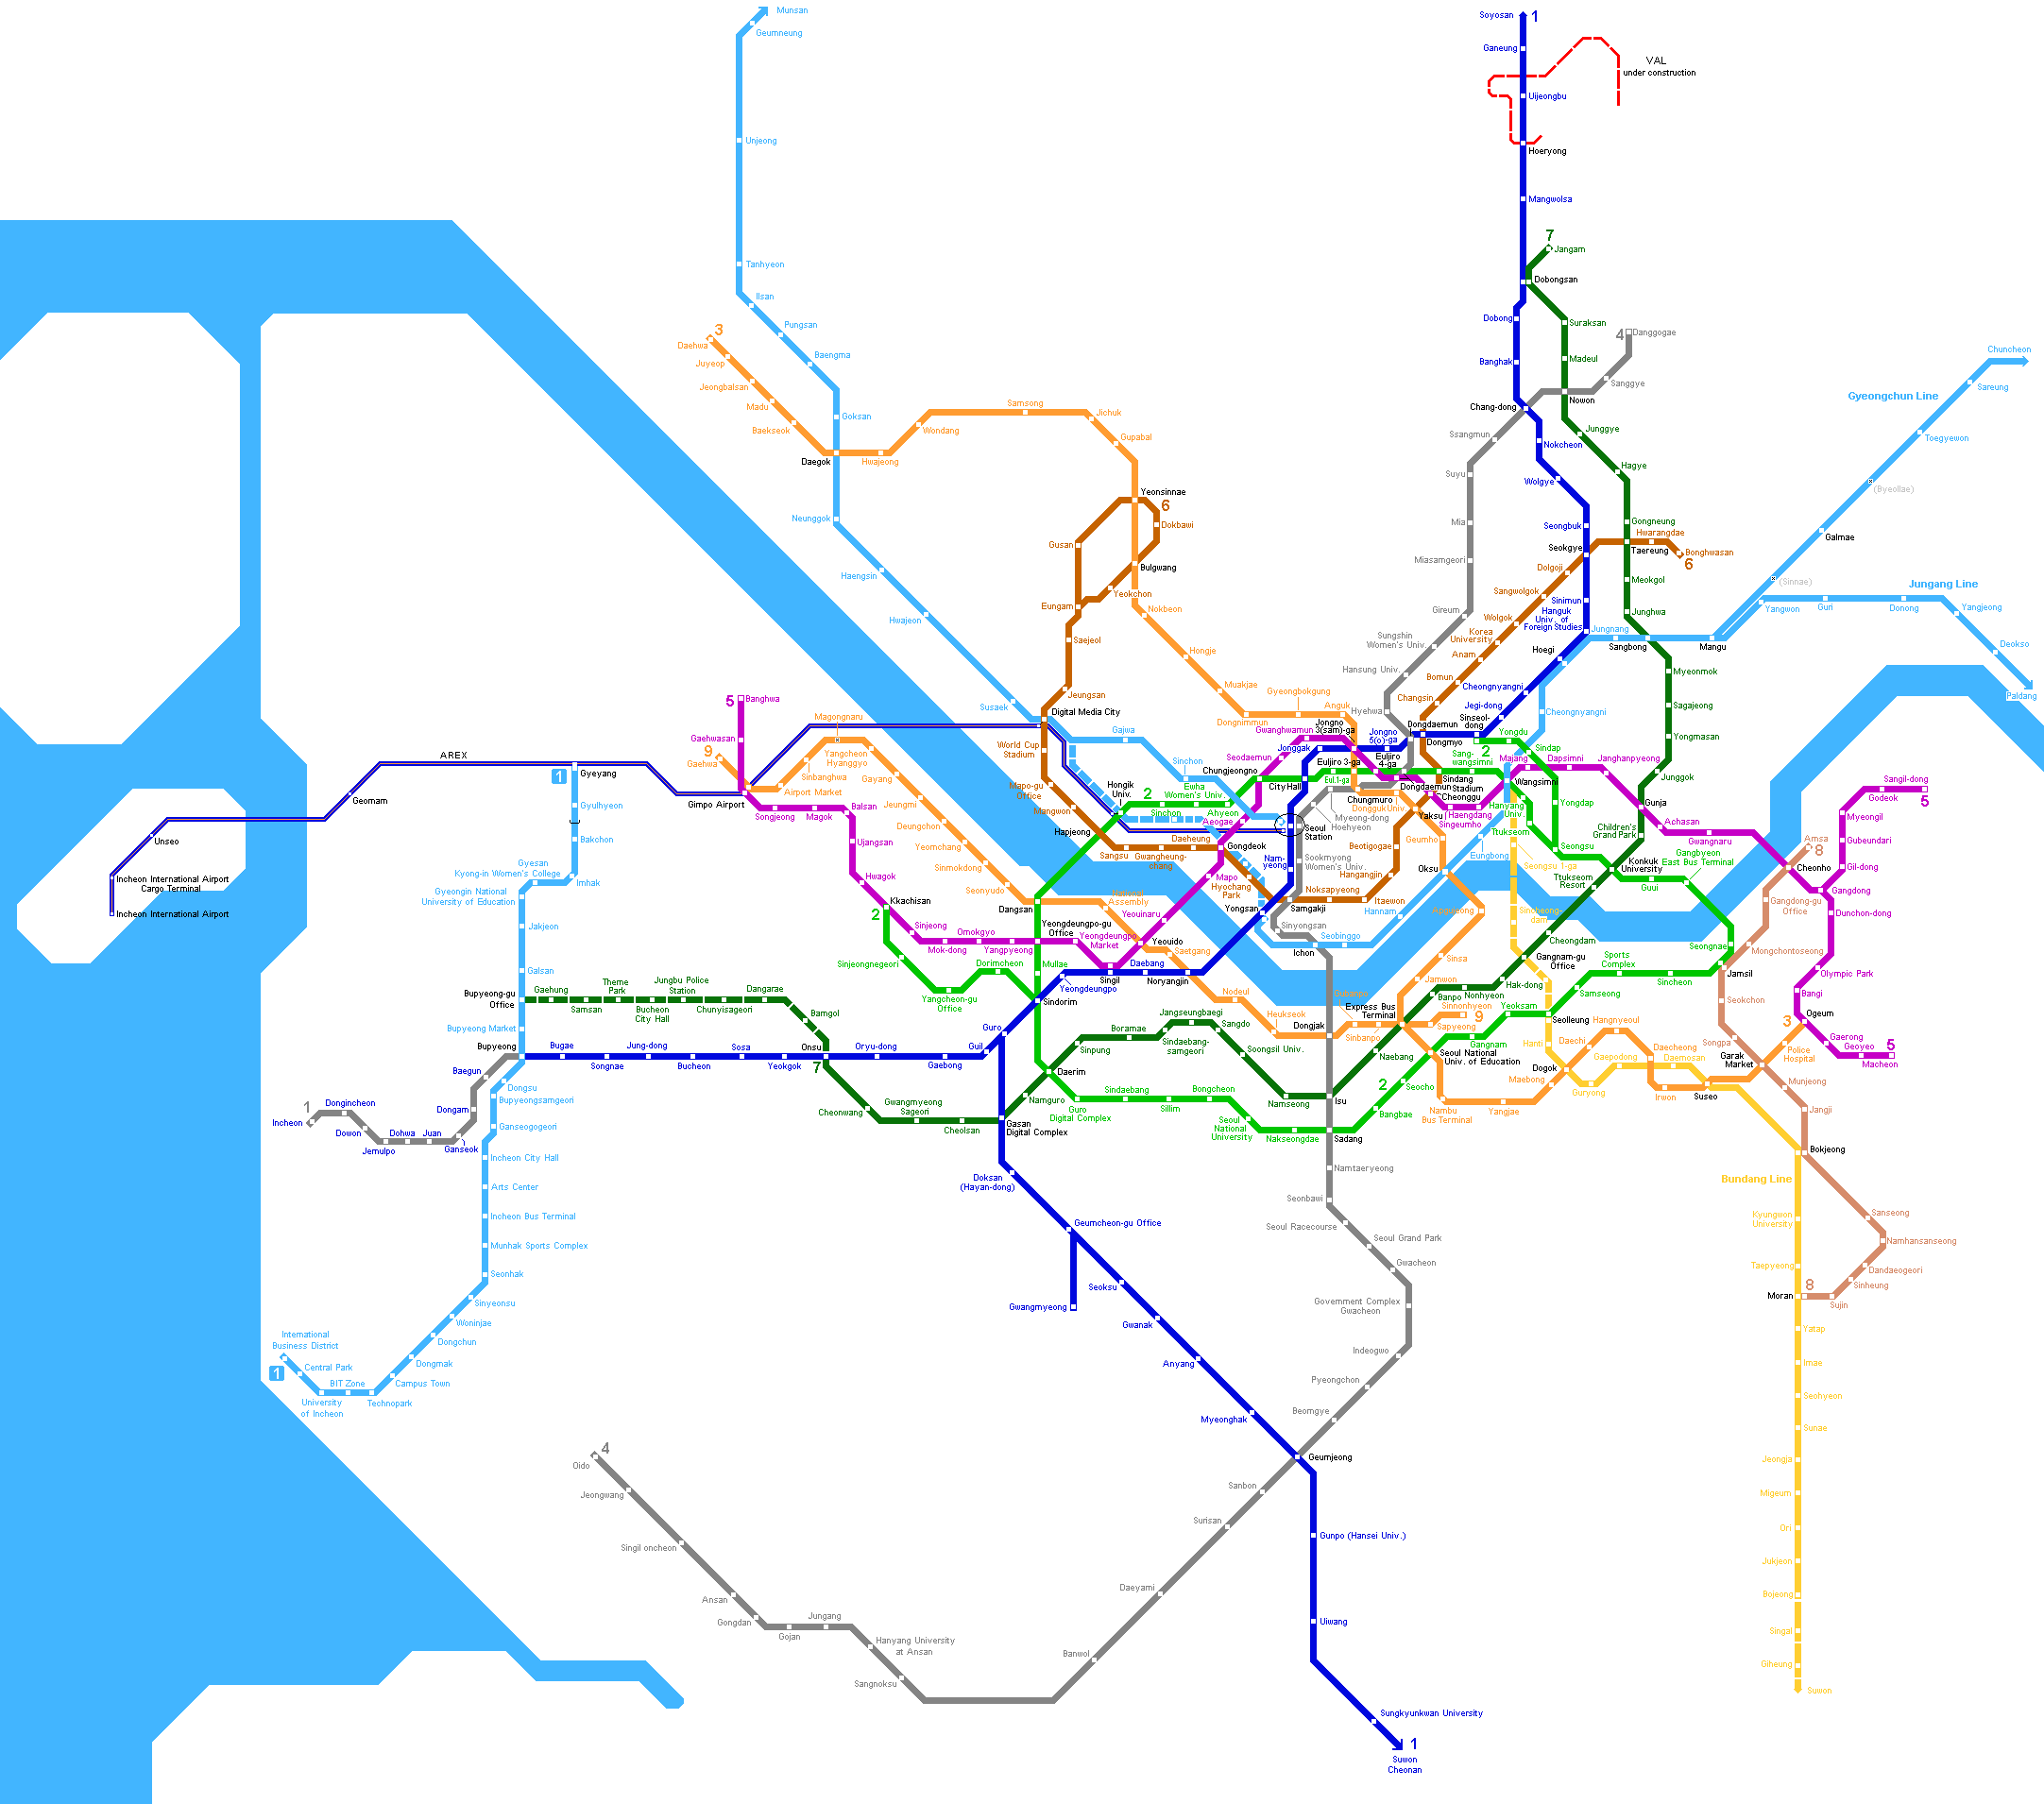 Eoul Subway Map.Seoul Metro Map Mapsof Net